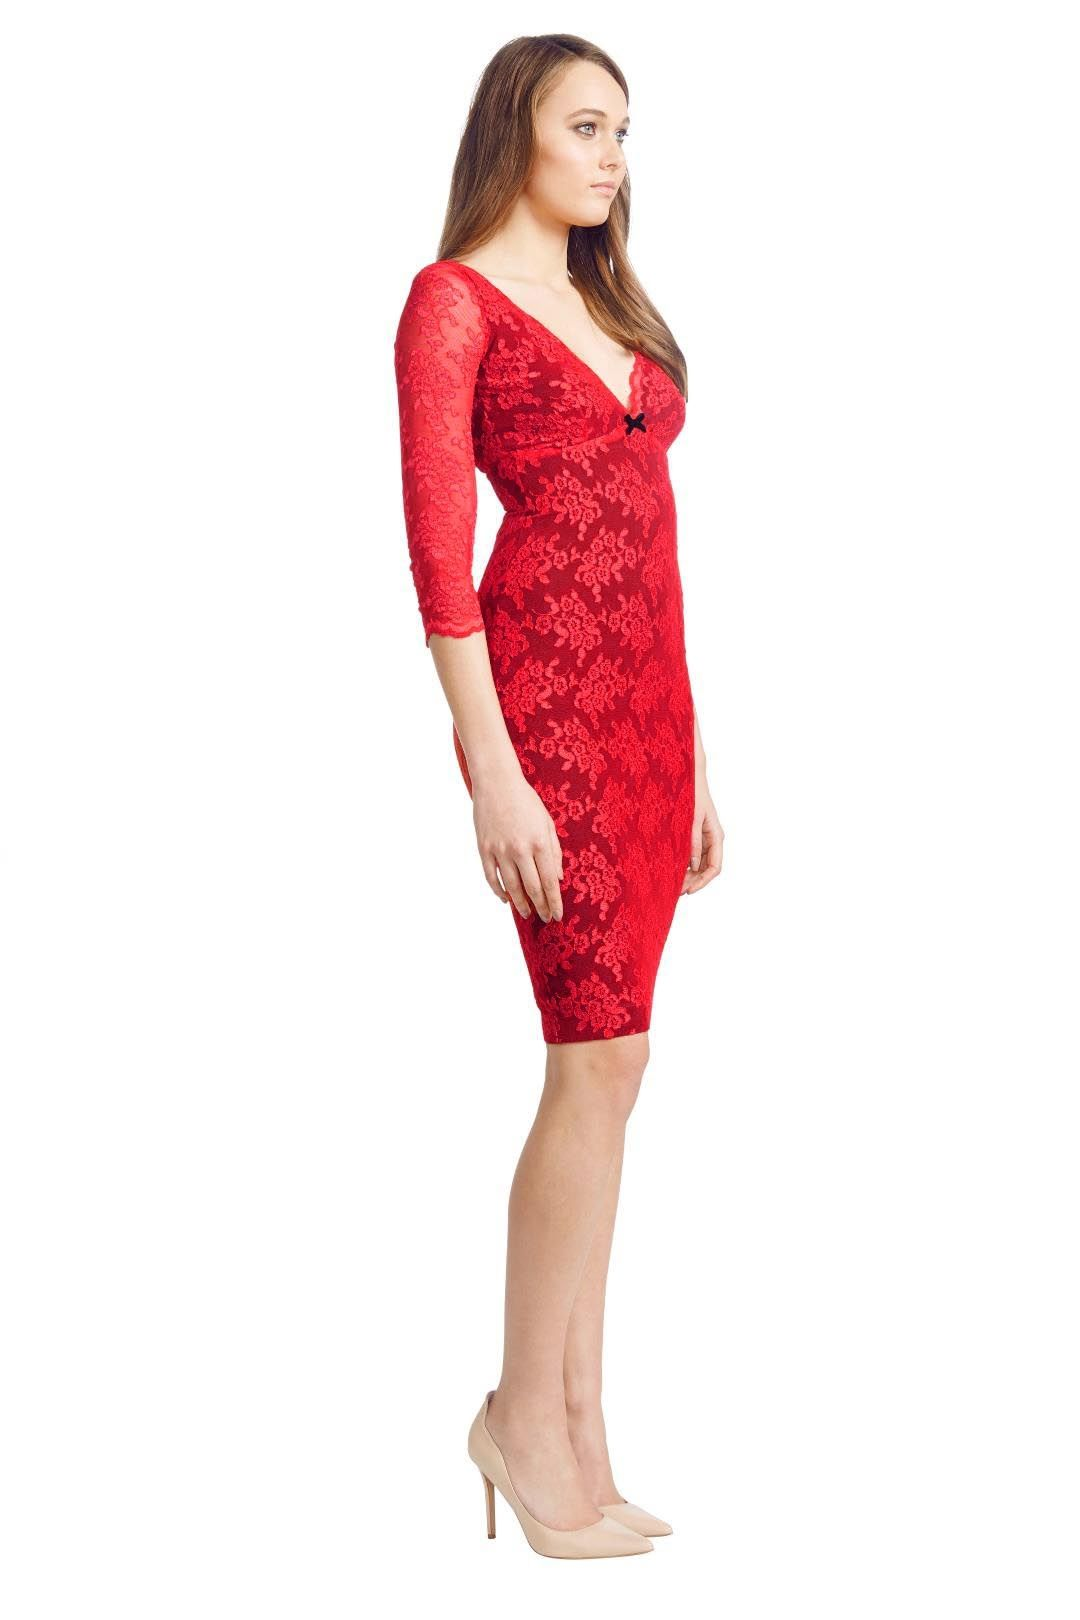 Wheels and Dollbaby - Red Scallop Lace FiFi Dress - Red - Side